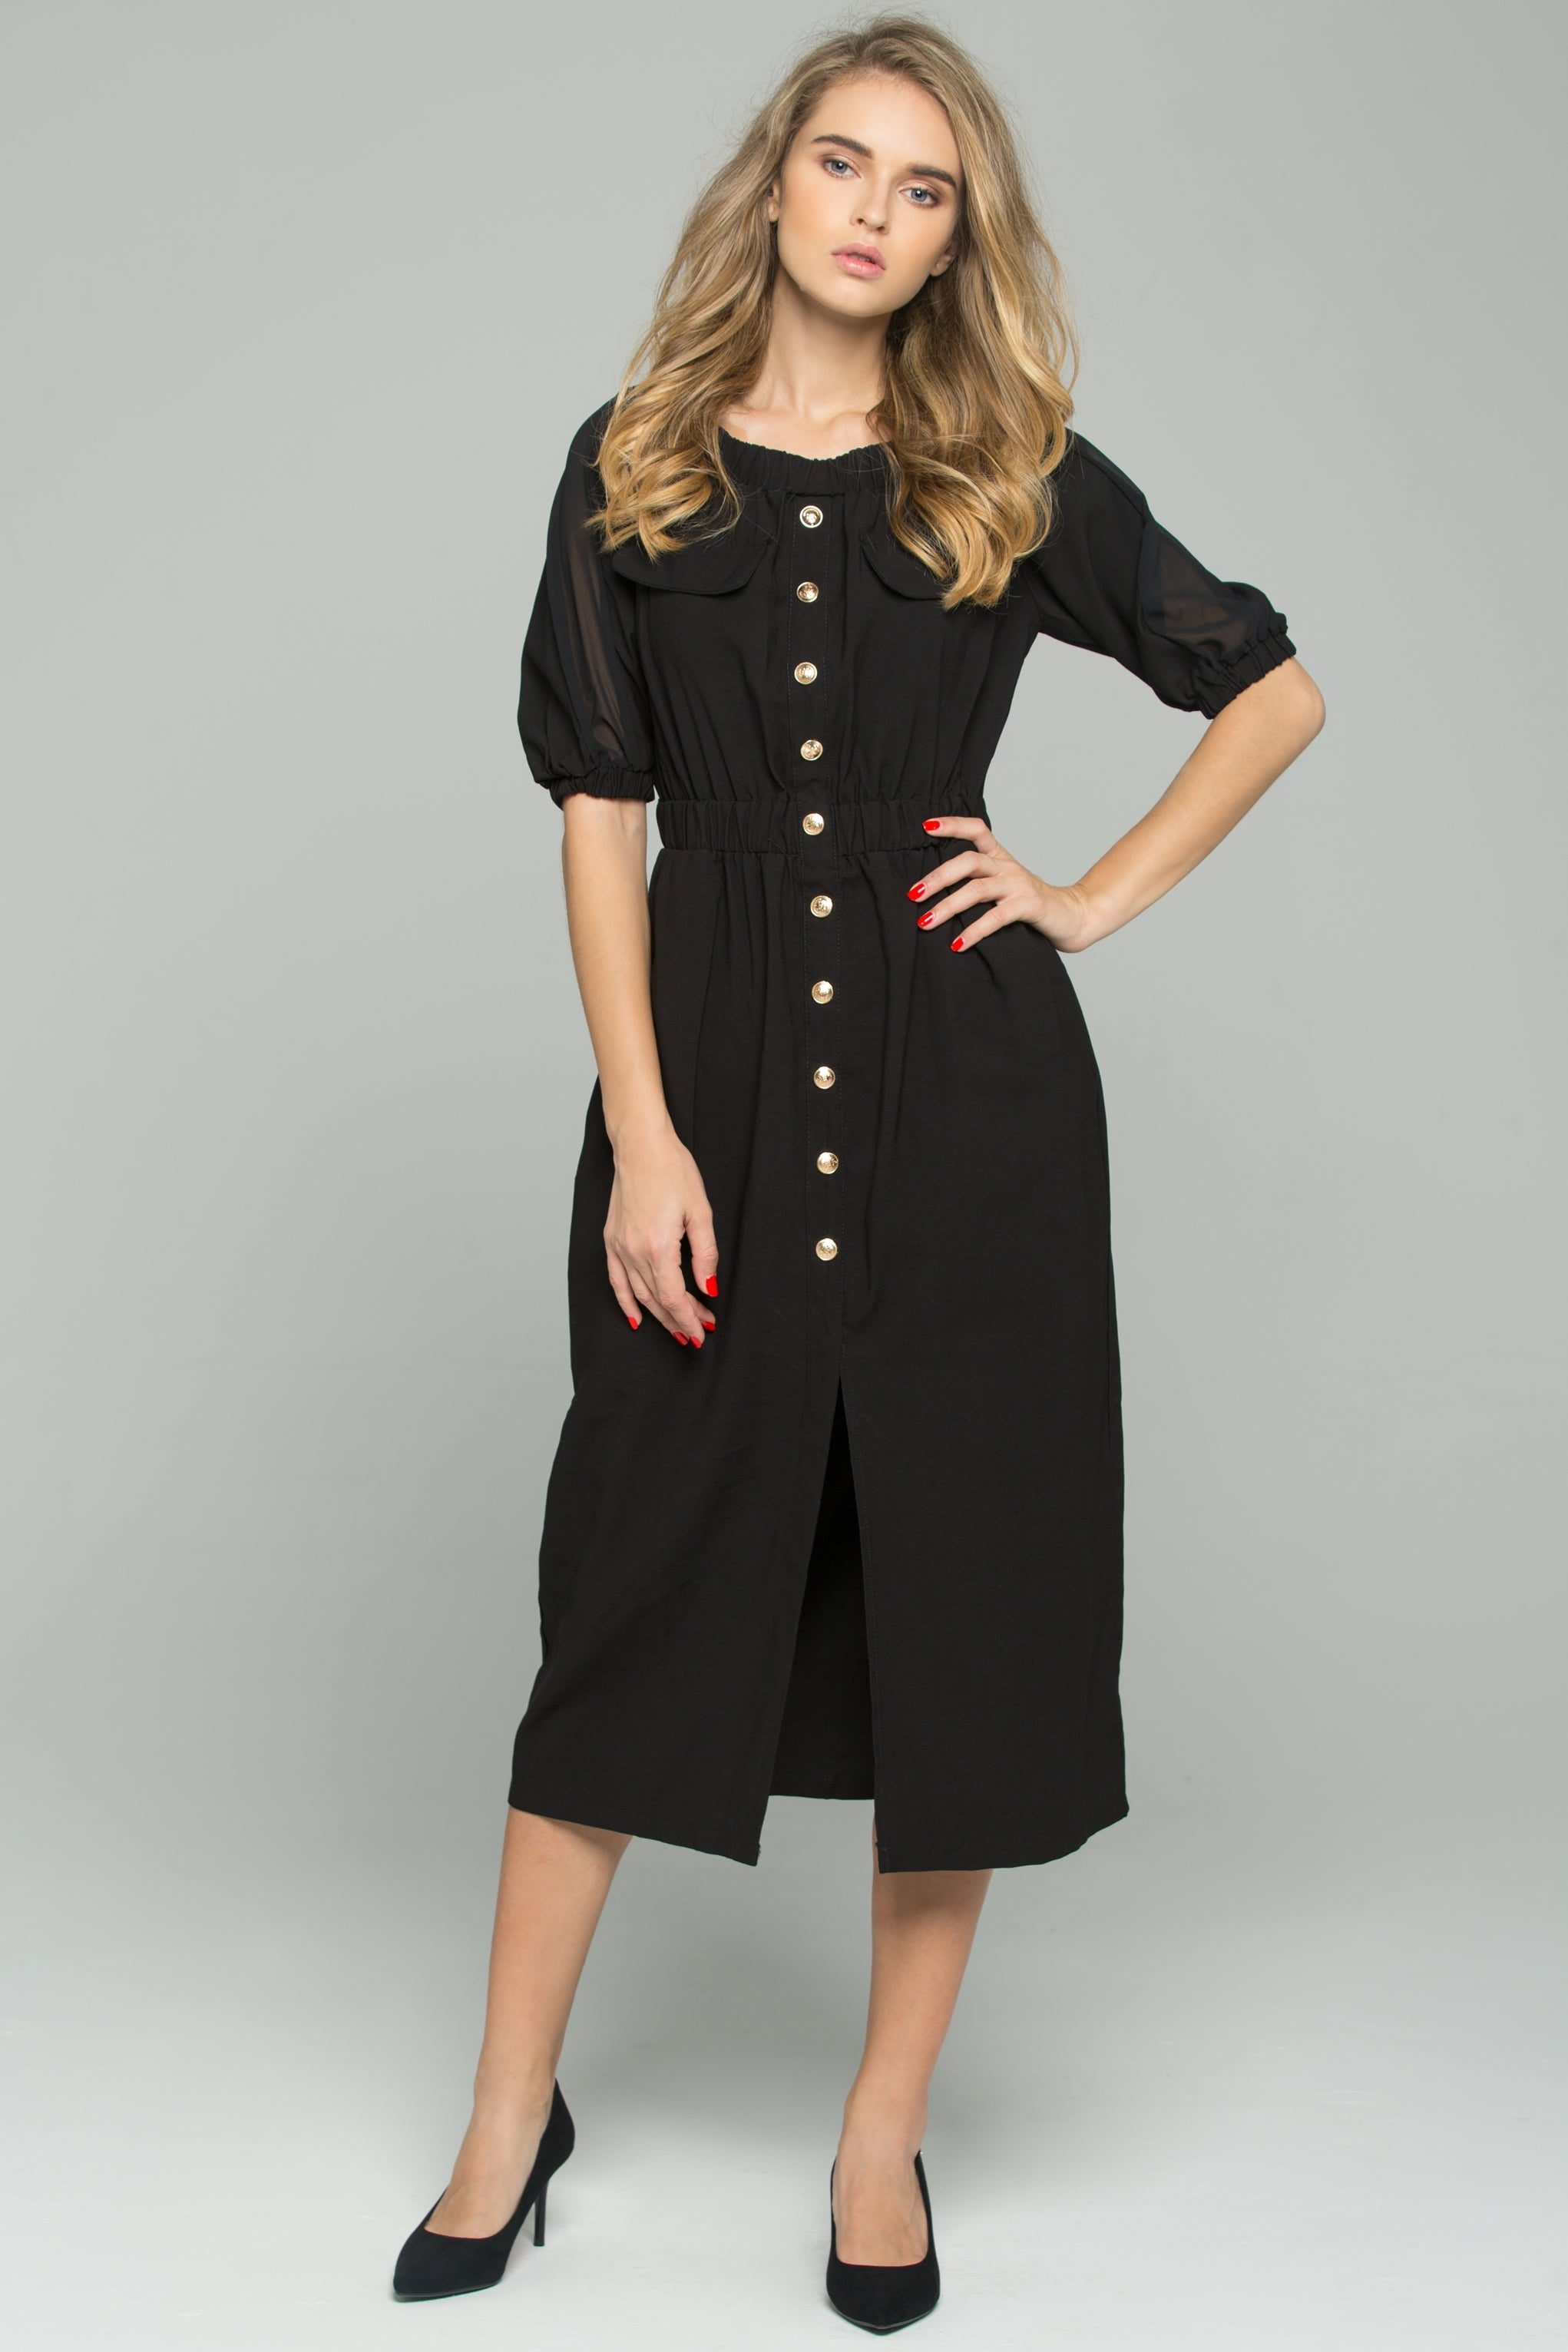 38630e649211 Black Chiffon Ruched Pleat Off-The-Shoulder Button-Down Long-Sleeved M –  OwnTheLooks